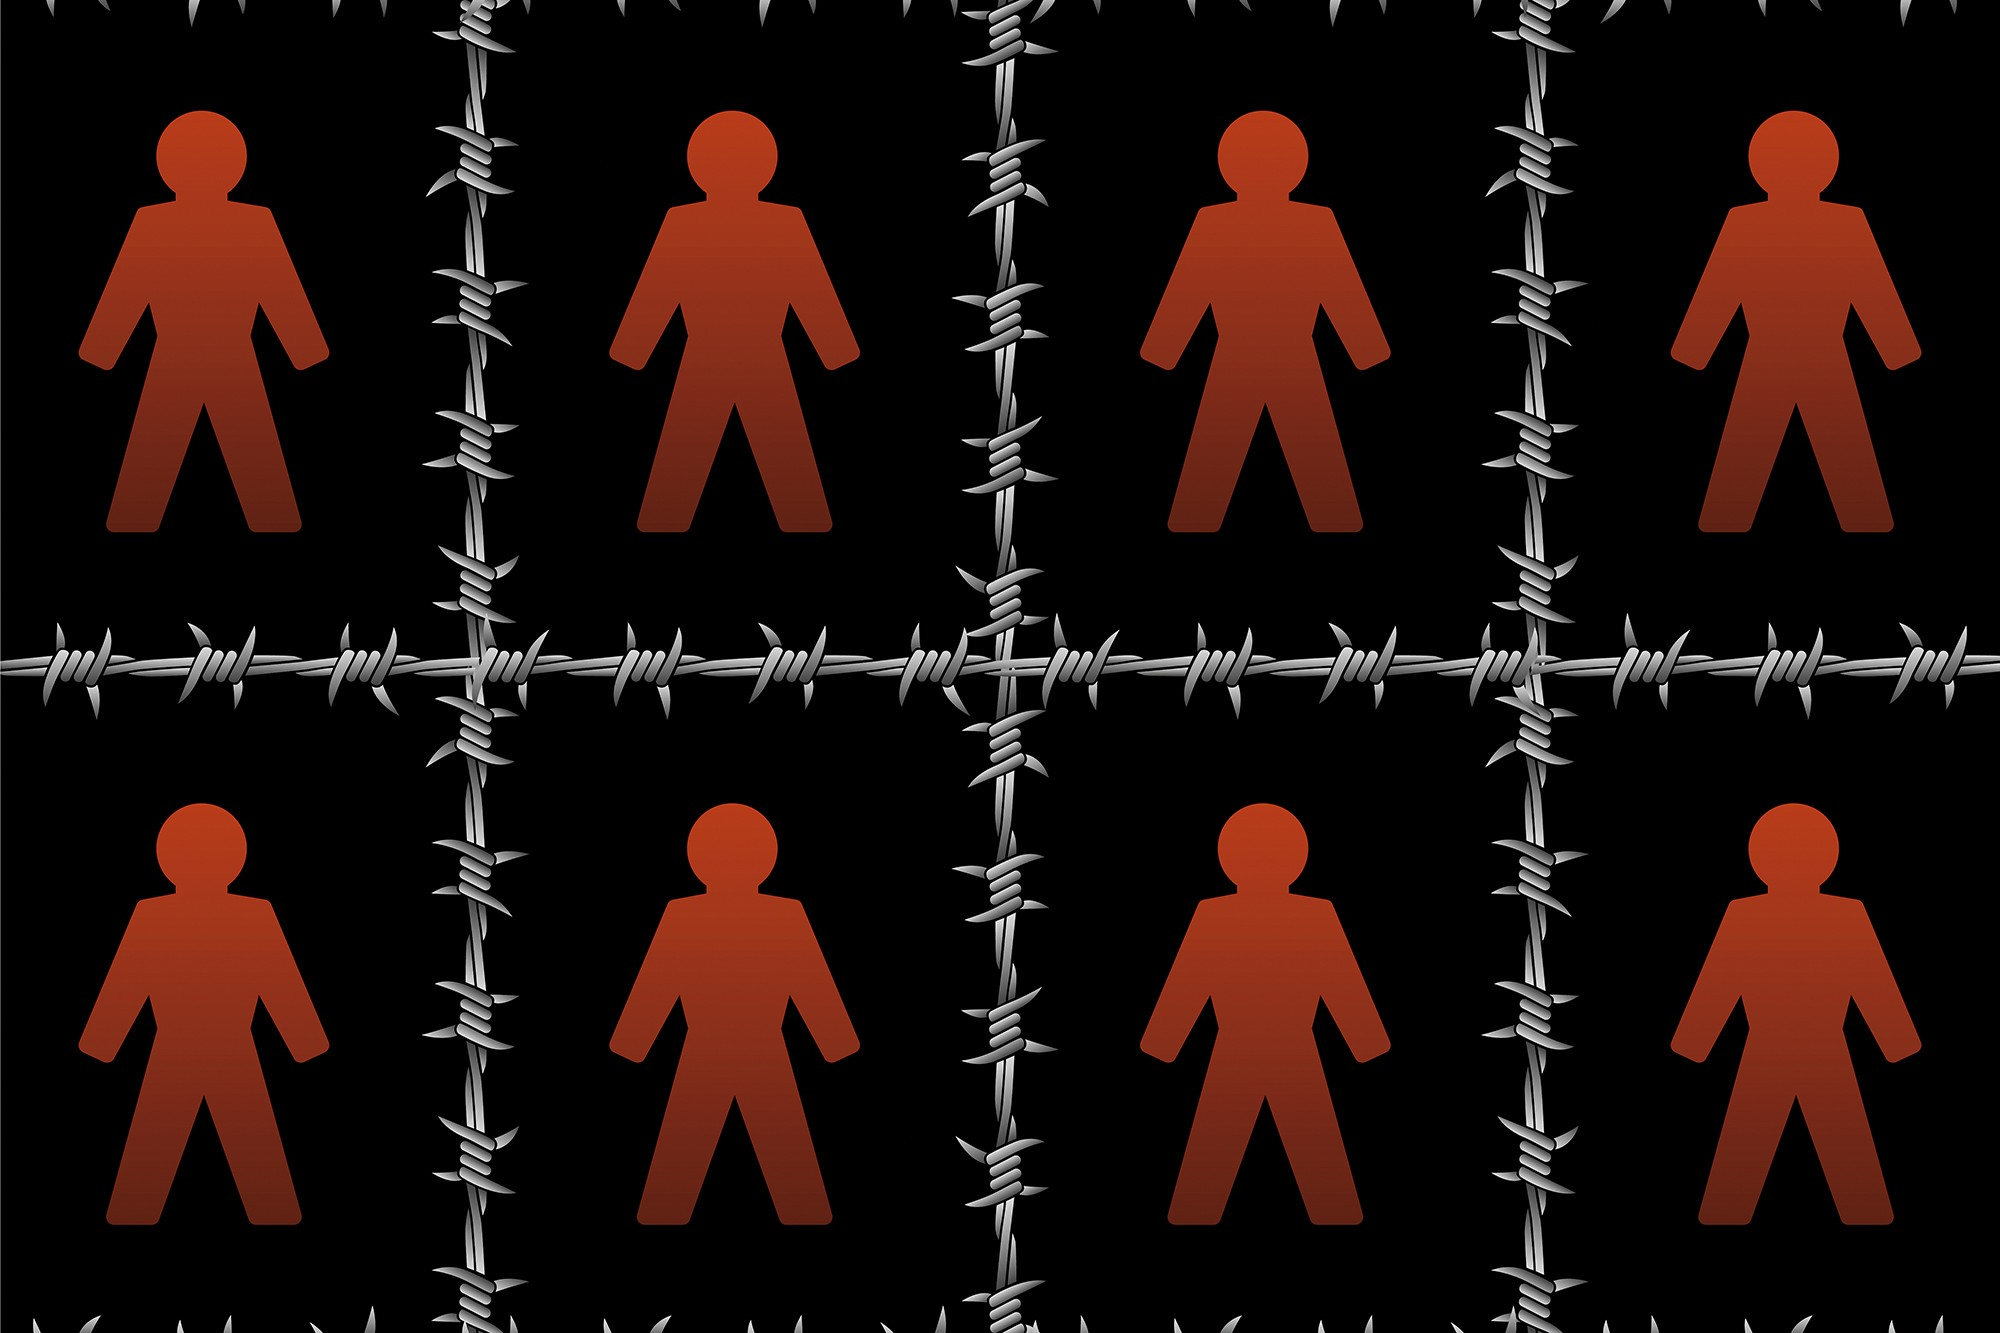 Cut outs of people in the center of barbed wire